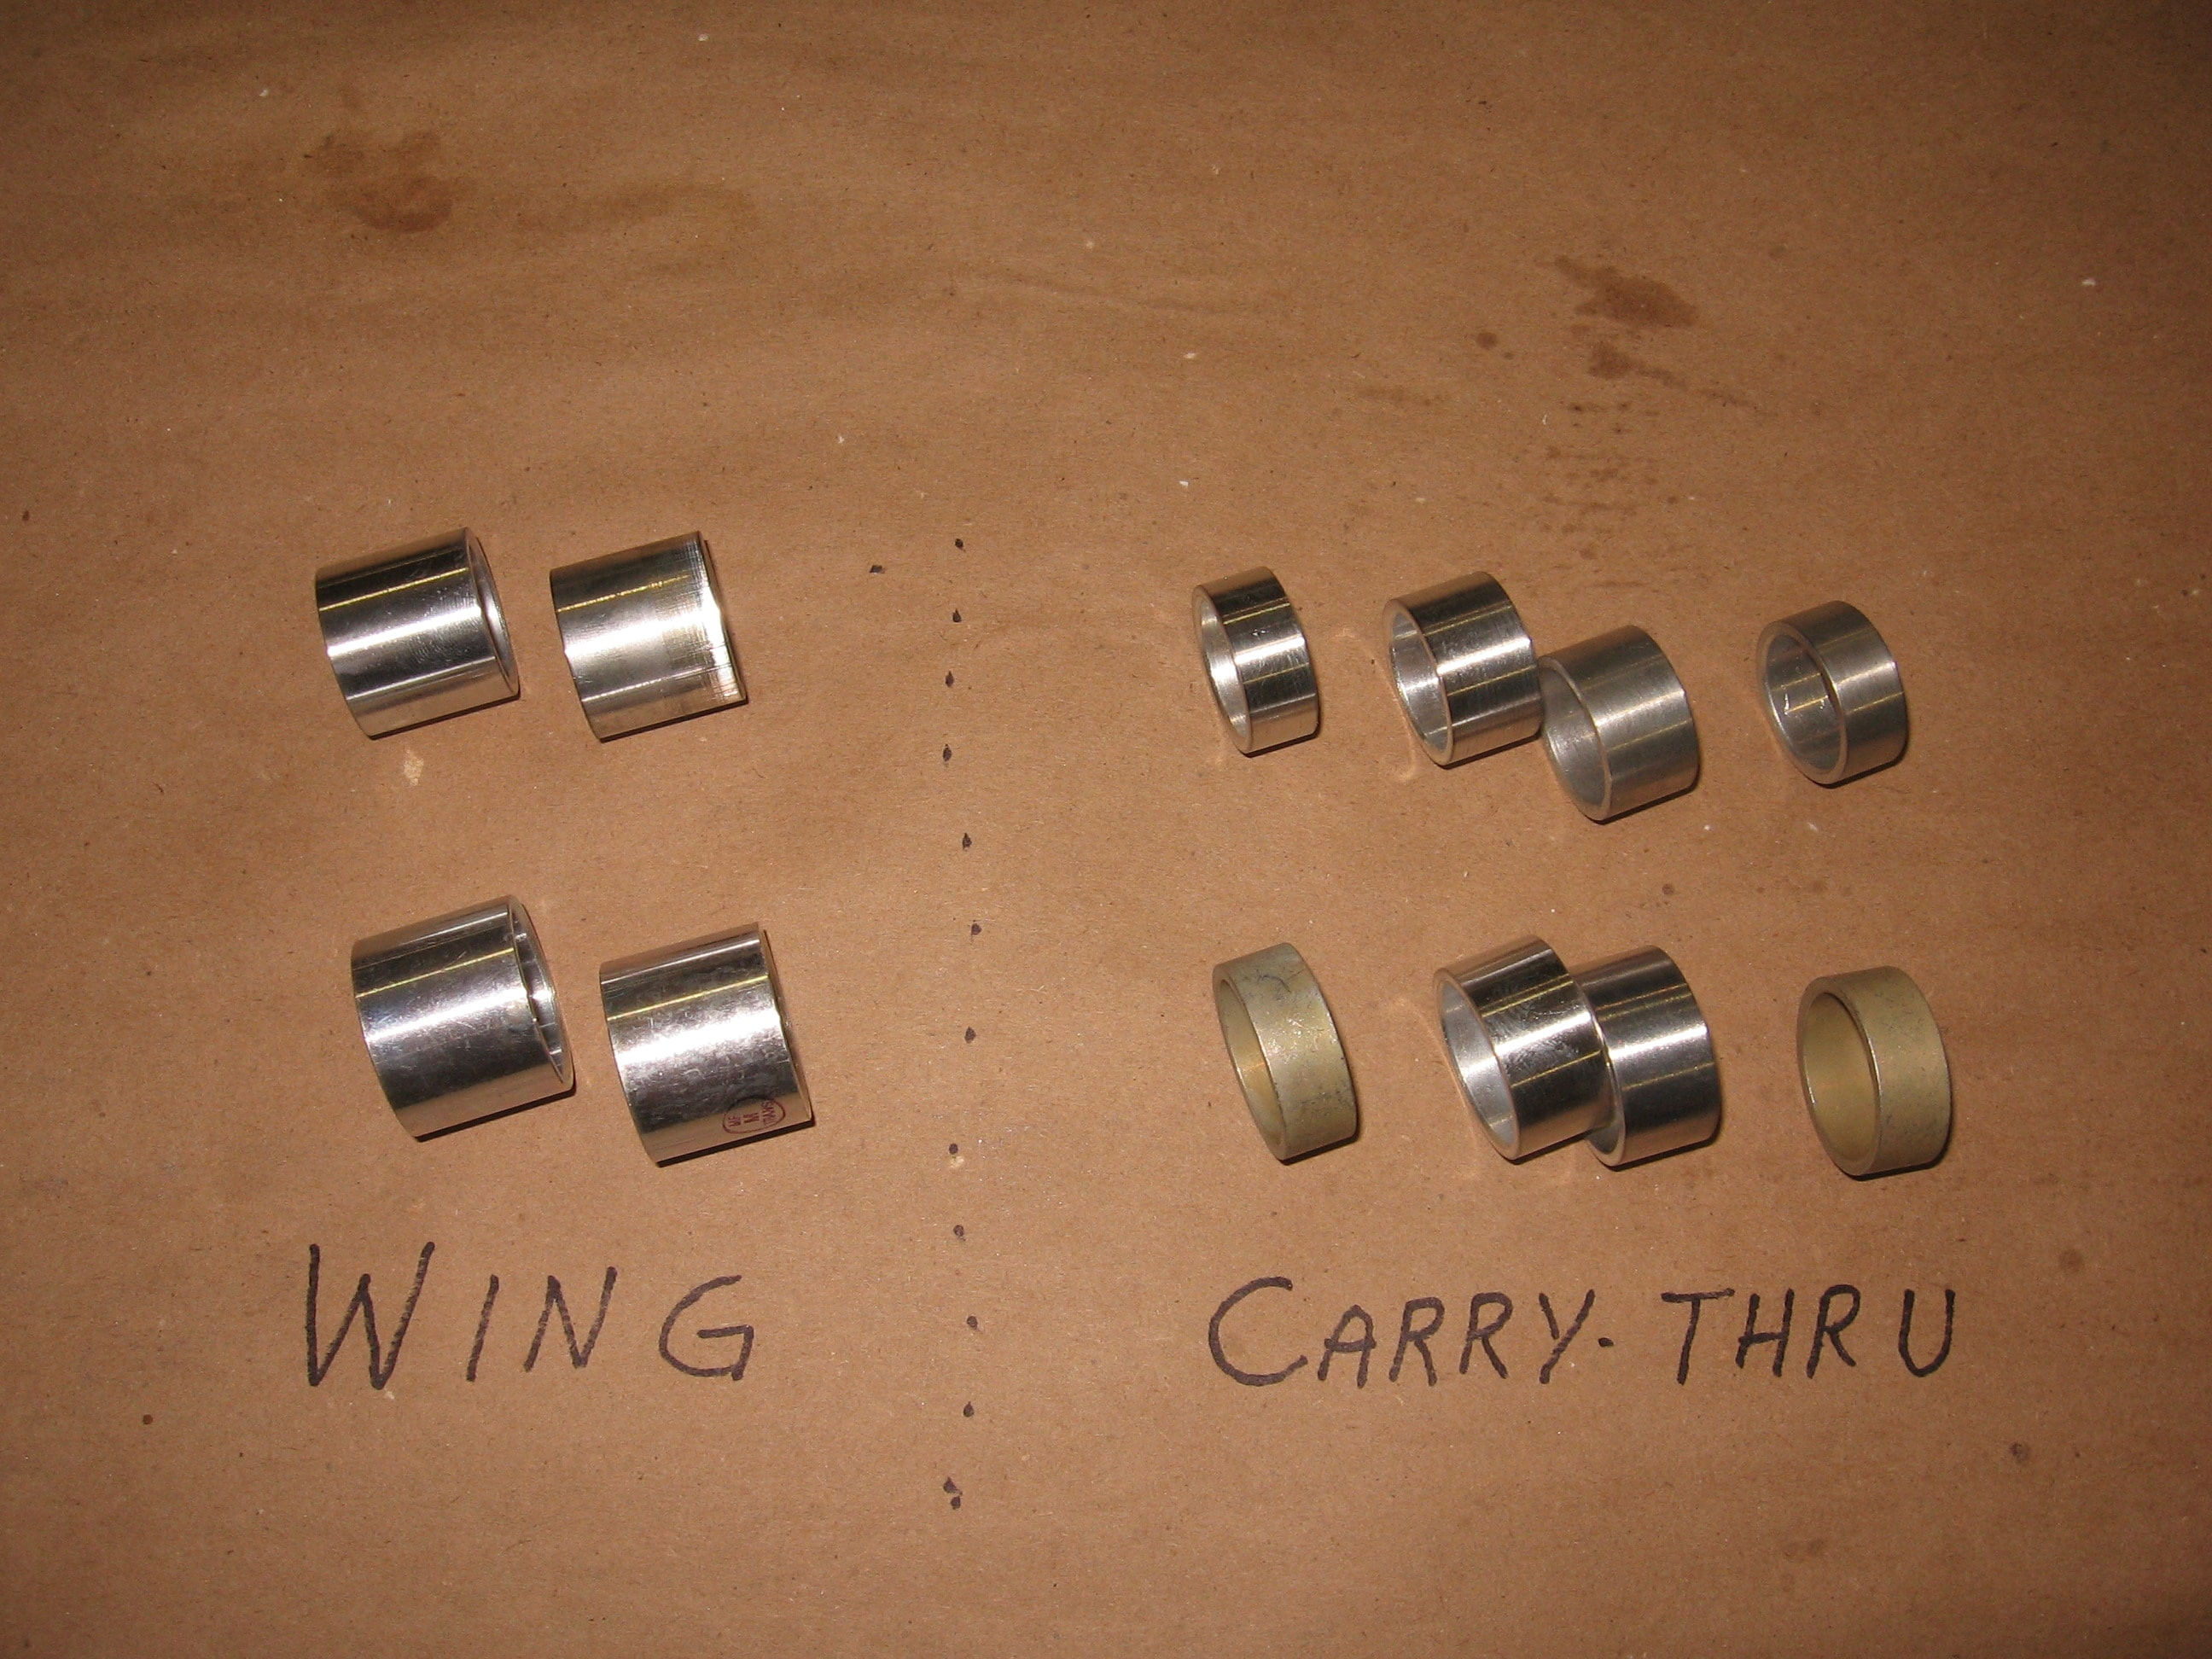 New bushings showing the original smooth clean surfaces.